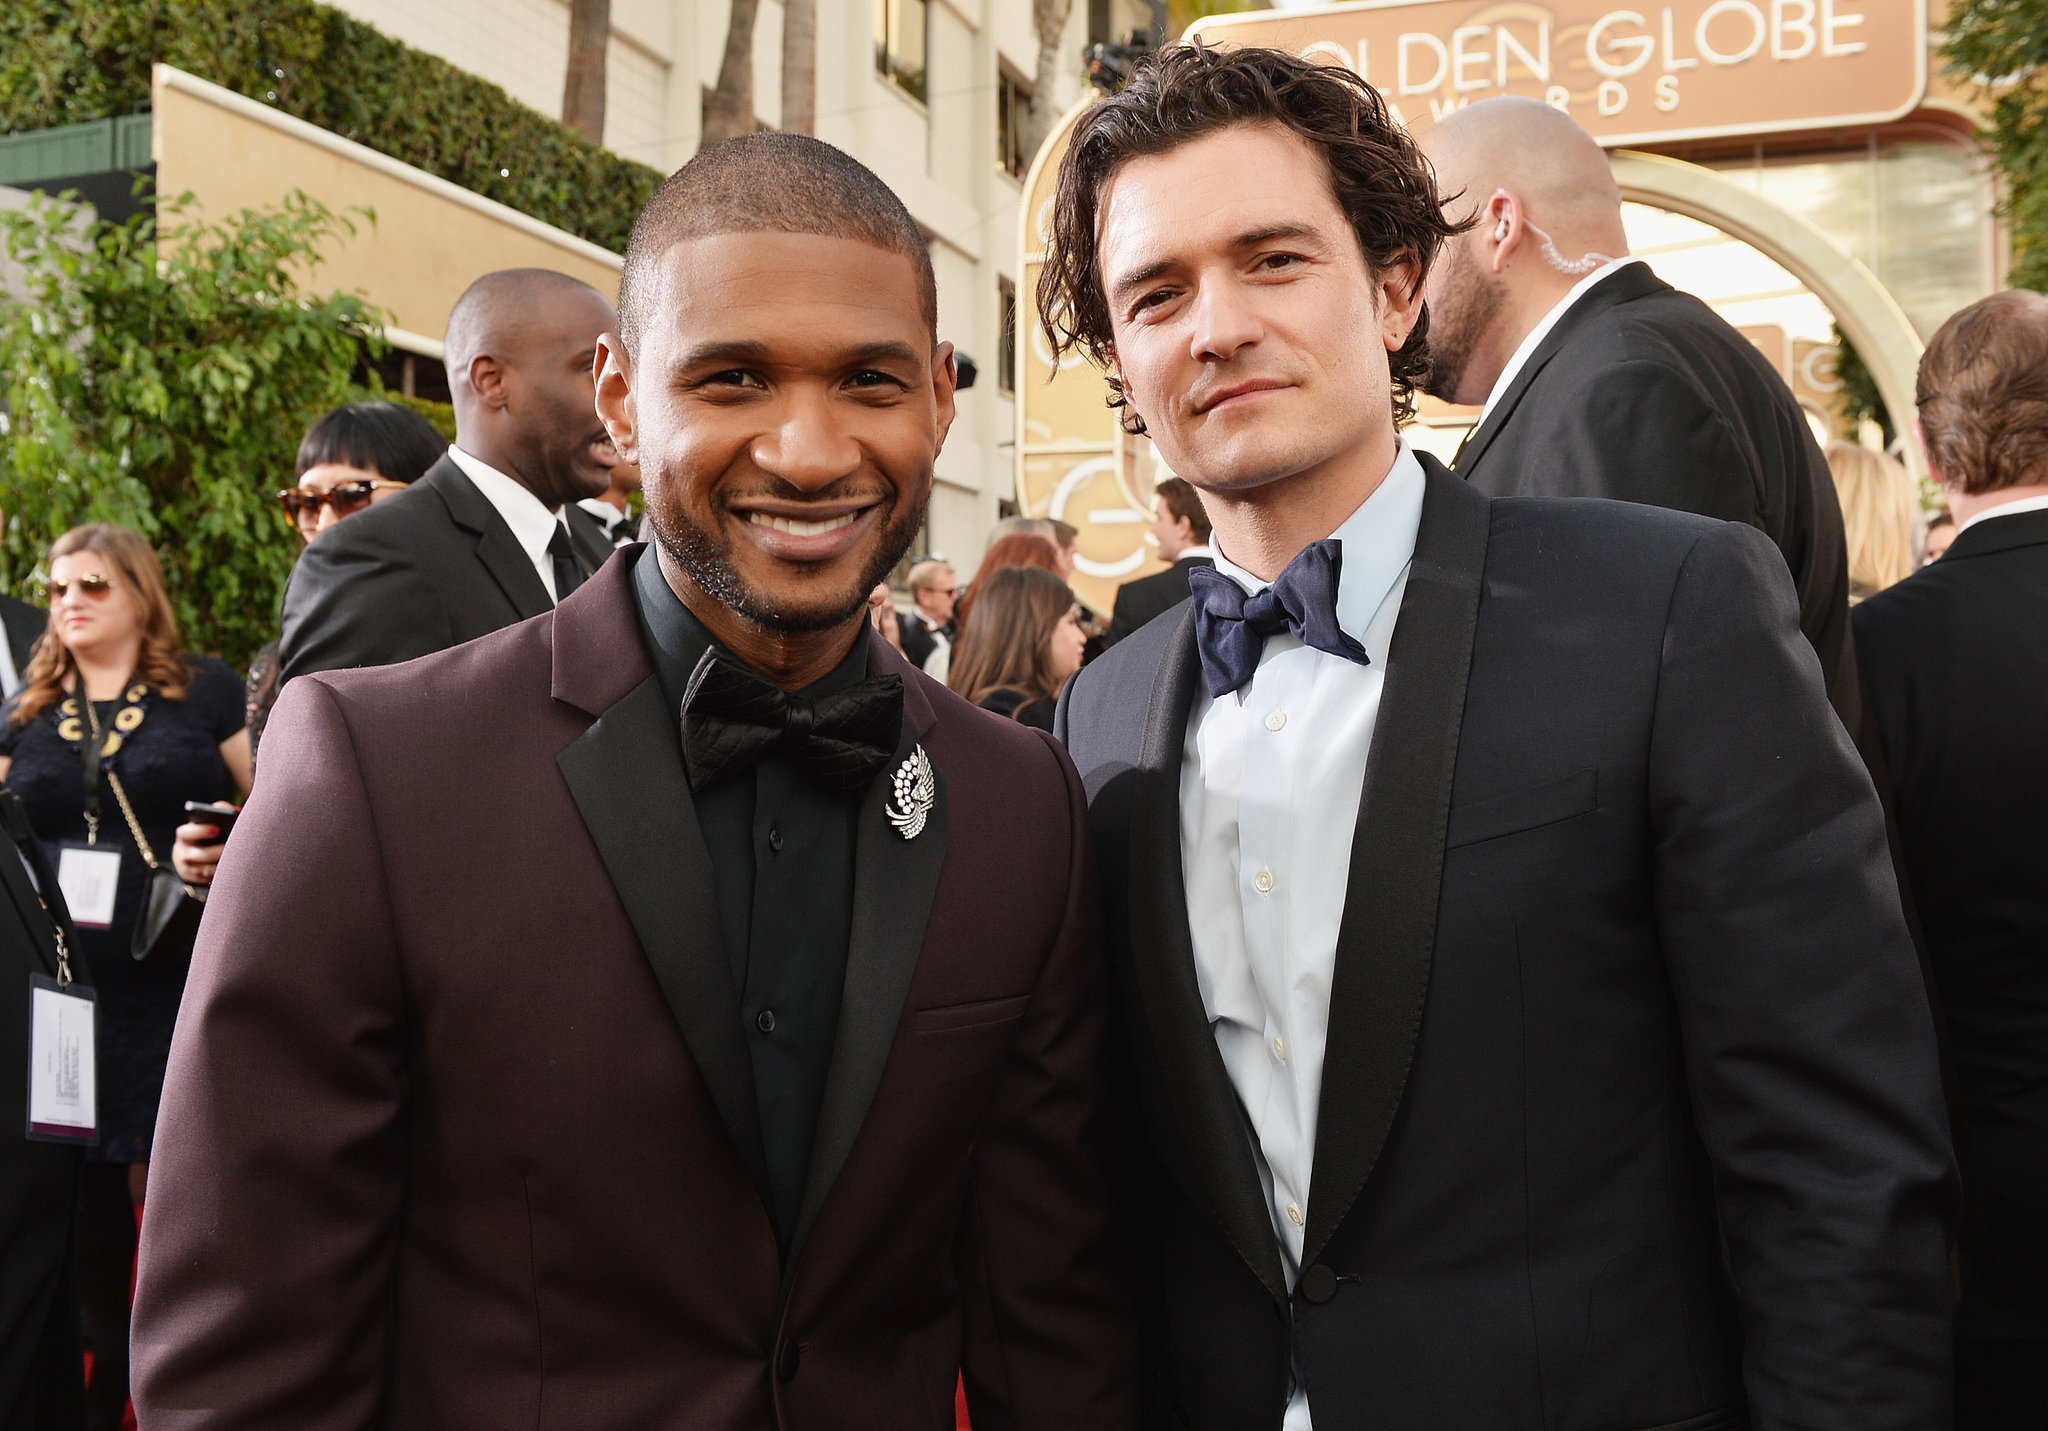 Usher and Orlando Bloom brought double the hotness to the red carpet.